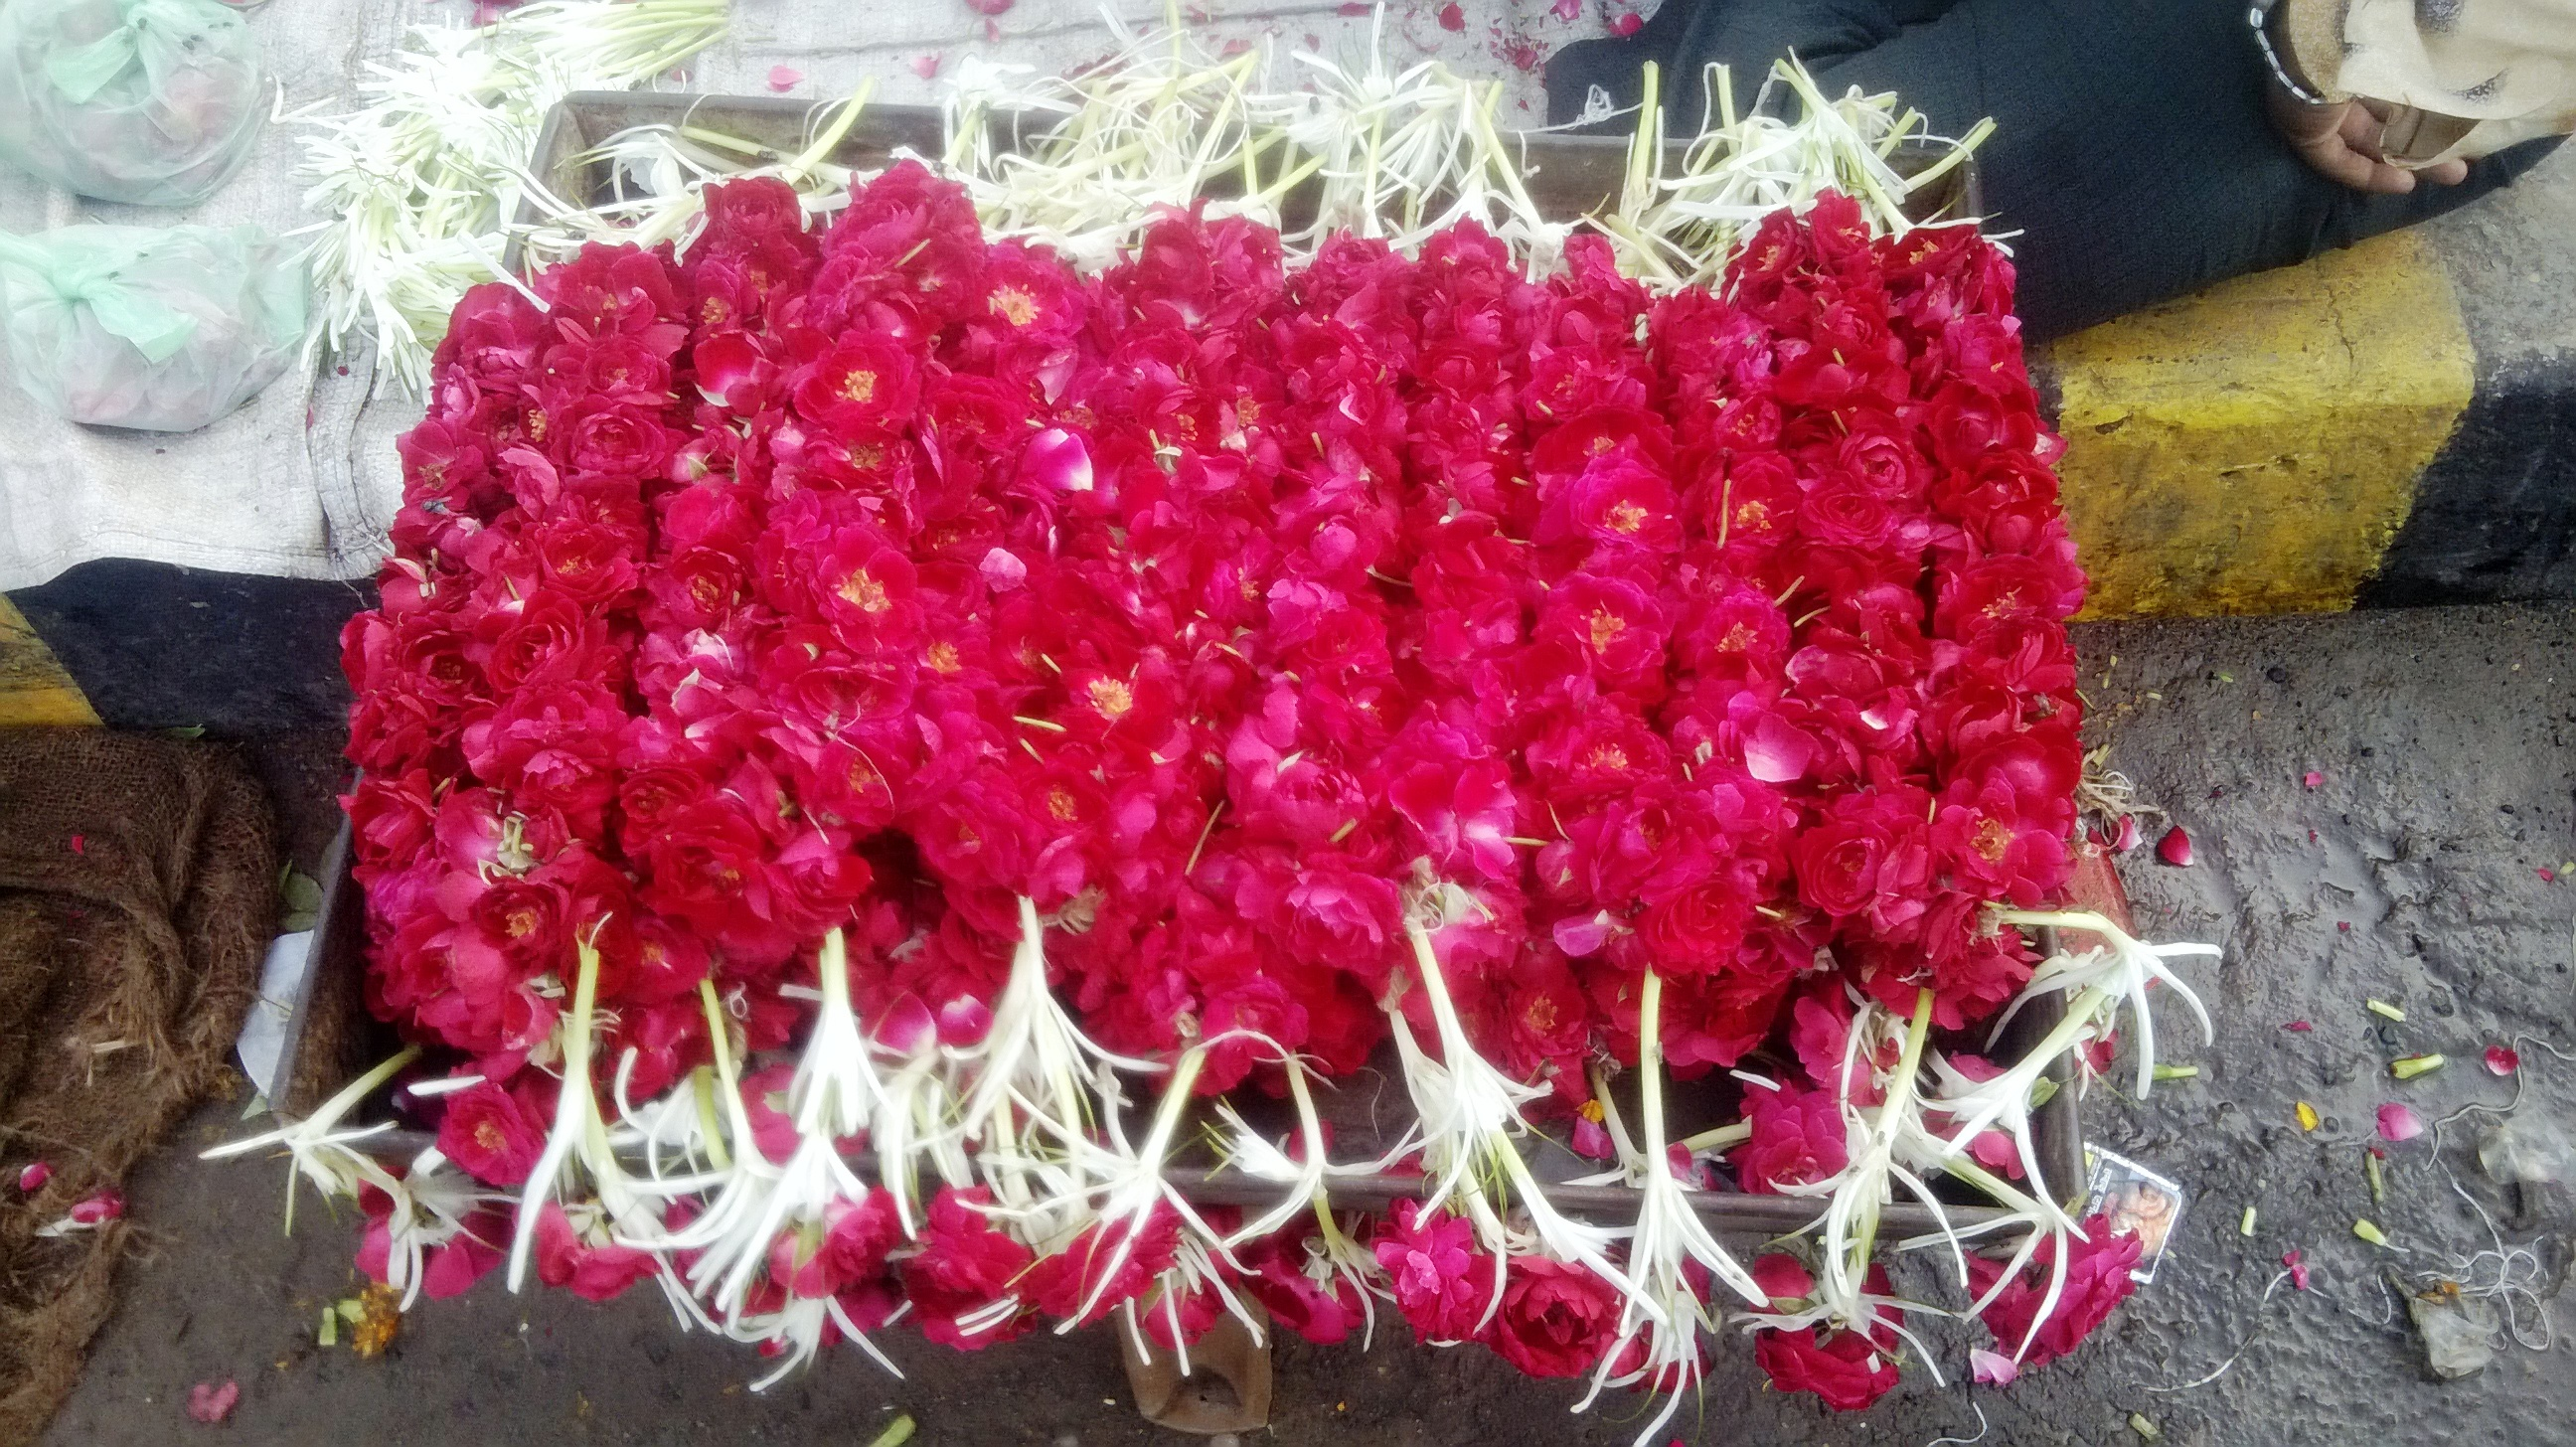 Roses for sale at the flower market on Jamalpur Bridge, Ahmedabad